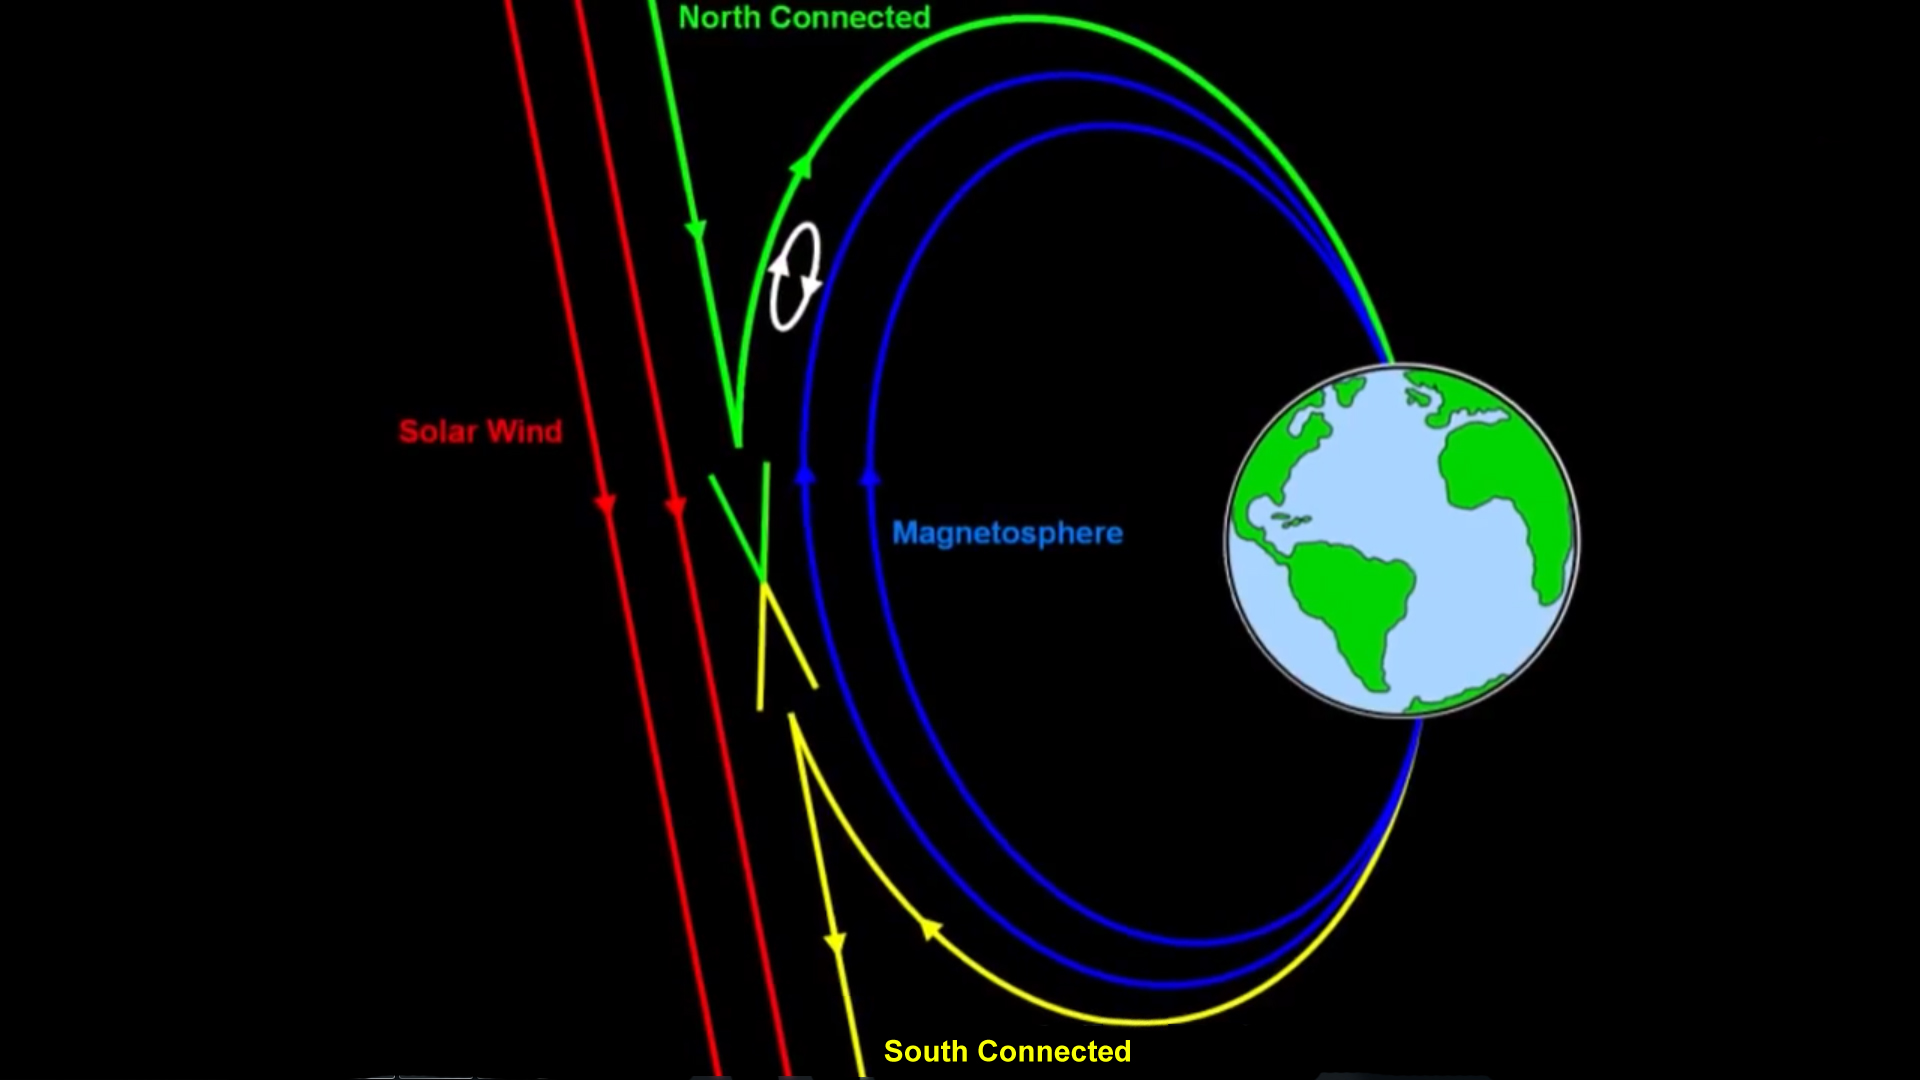 hight resolution of themis diagram showing earth s magnetic field and how it interacts with the solar wind